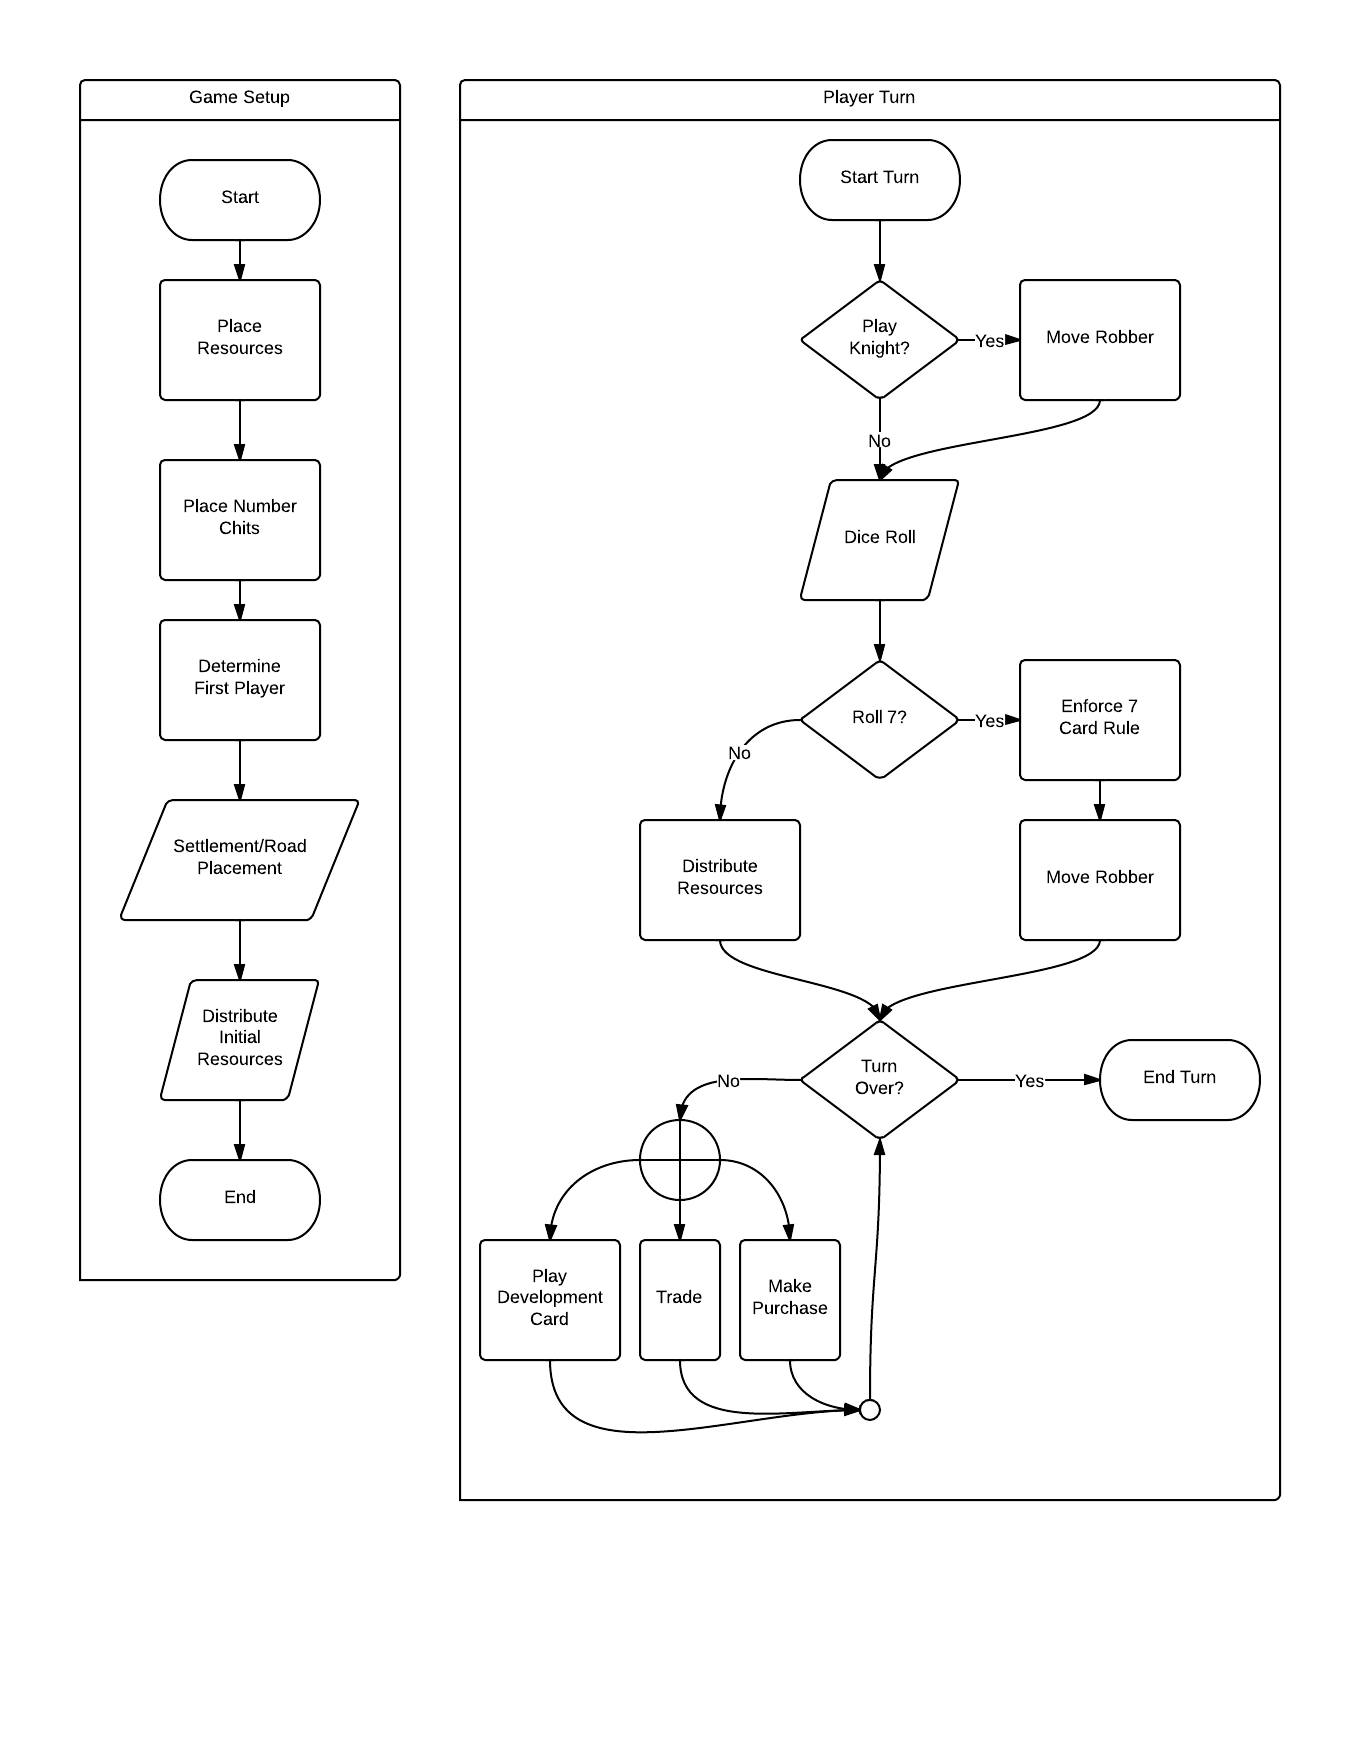 Josh hunsbergers lab notebook met with team created first tscp presentation developed first high level flow chart for game logic pooptronica Choice Image